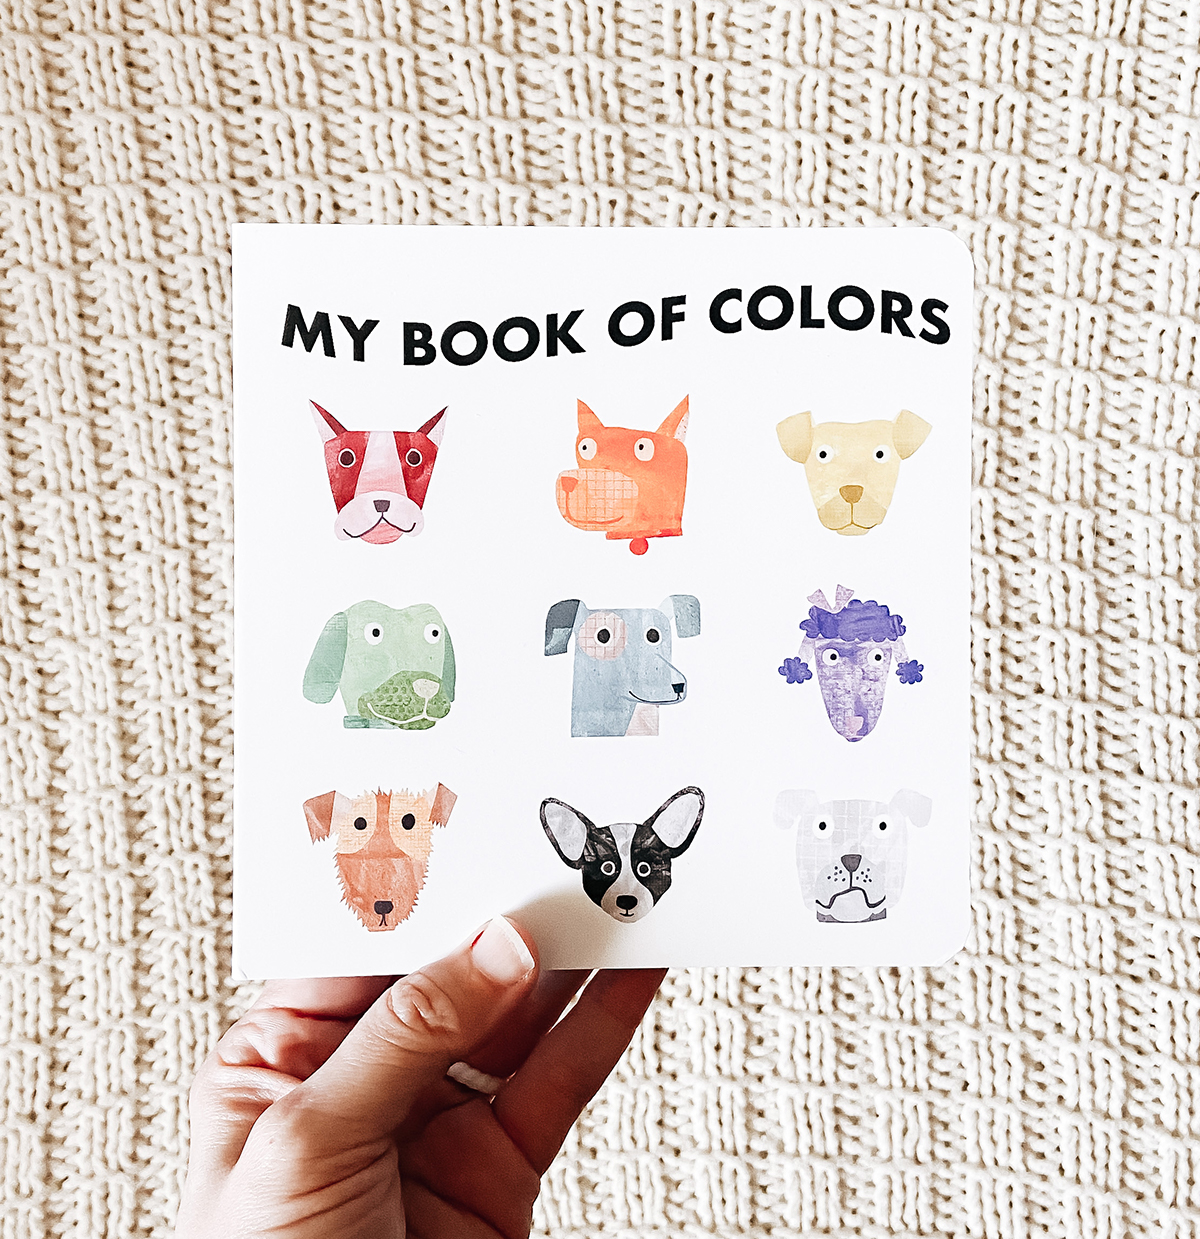 Hand holding up Artifact Uprising Baby Board Book titled My Book of Colors and featuring animal photos on cover